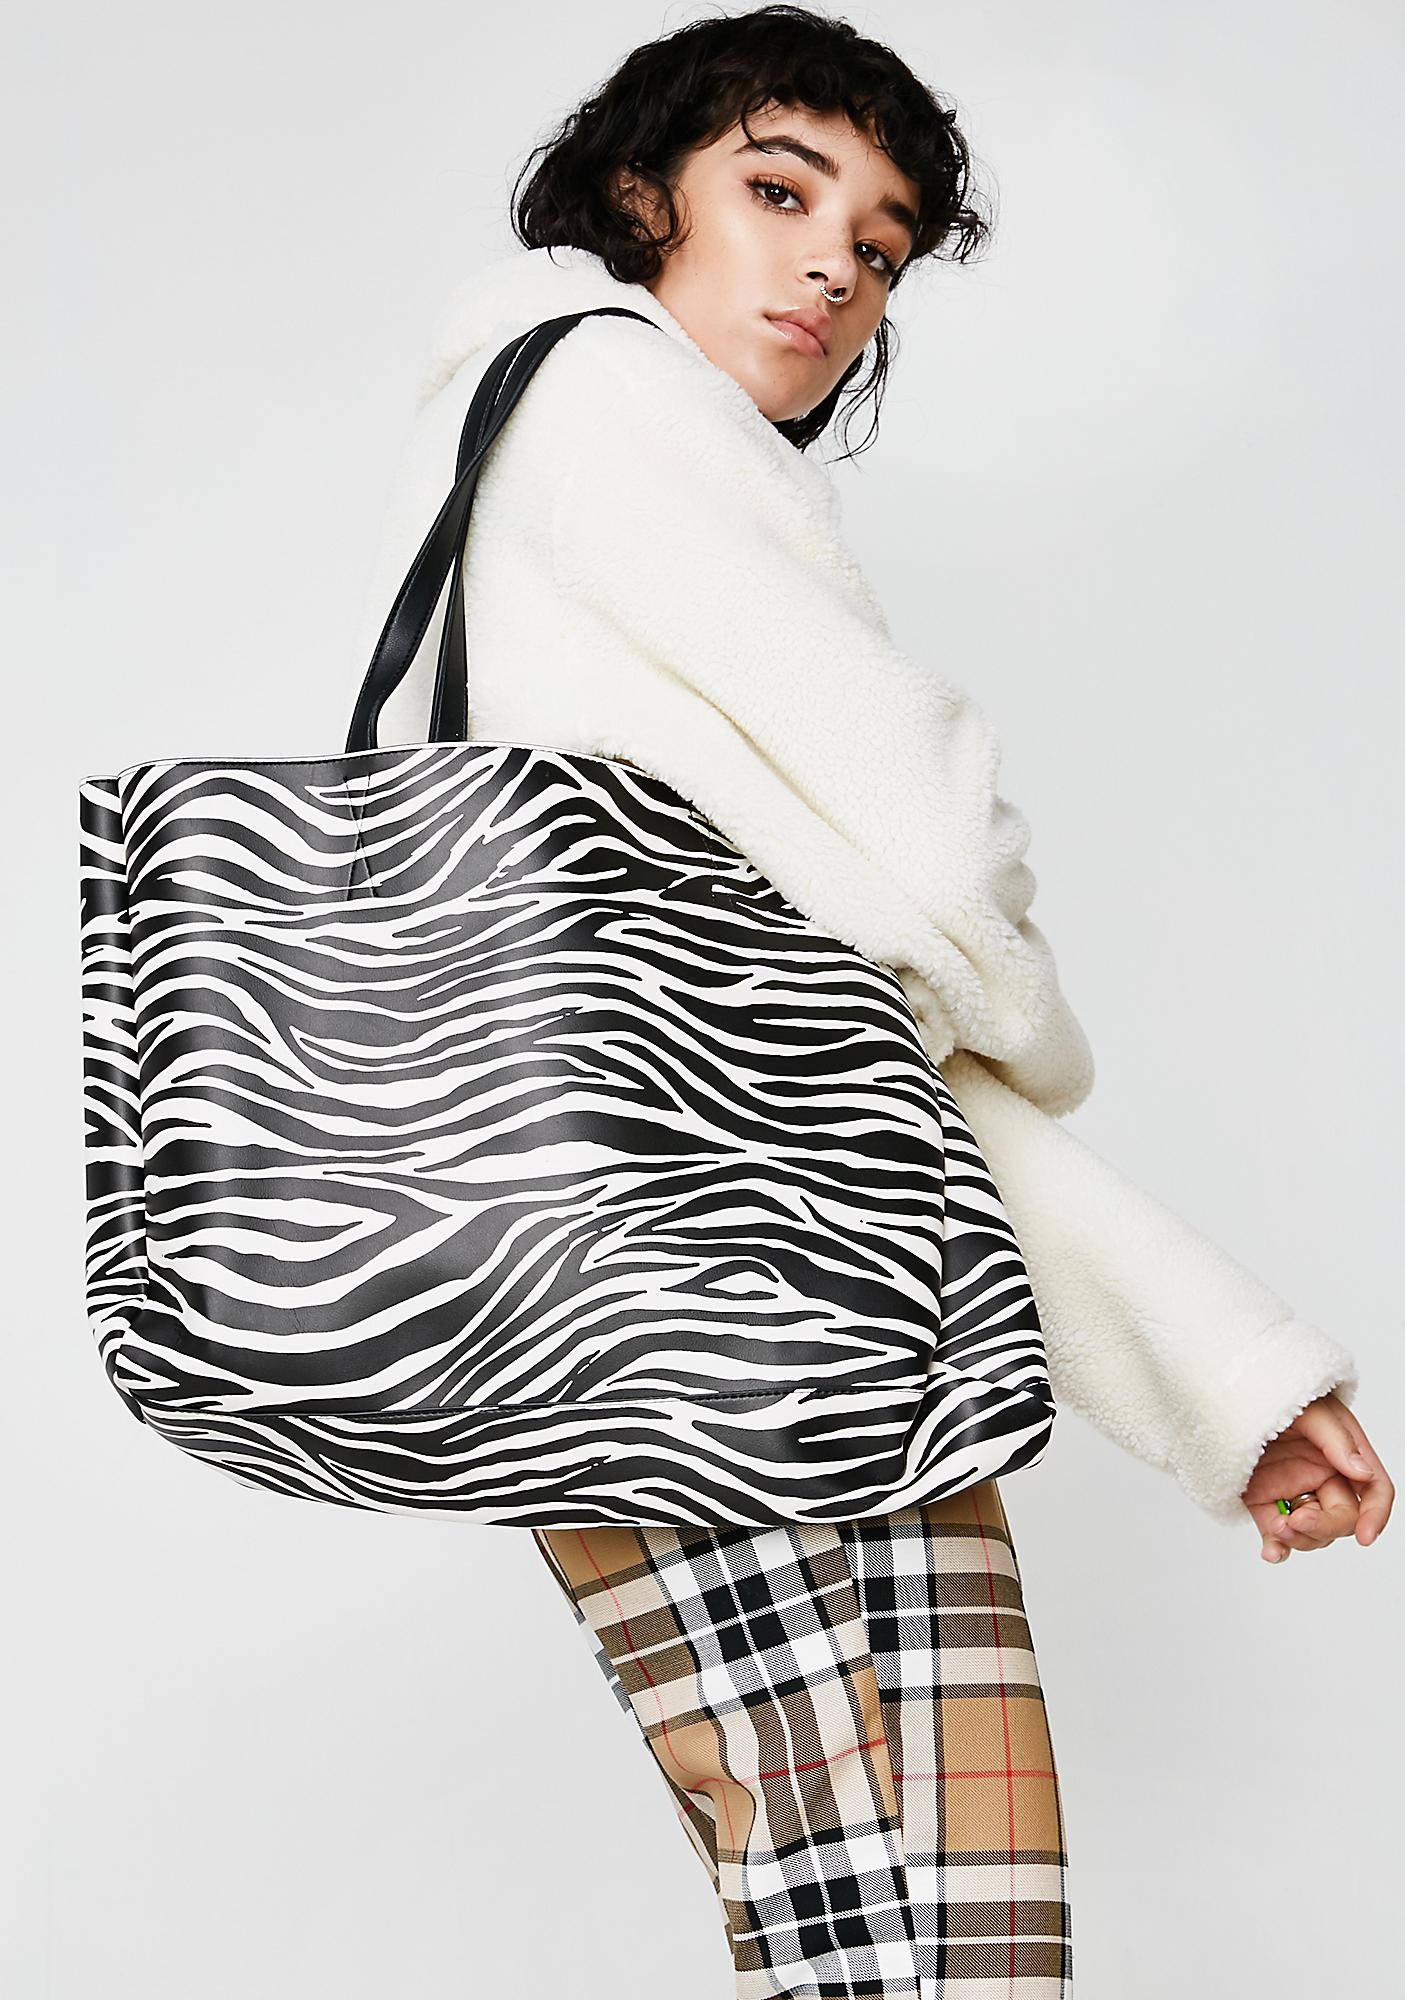 Skinnydip Zebra Camille Shoulder Bag